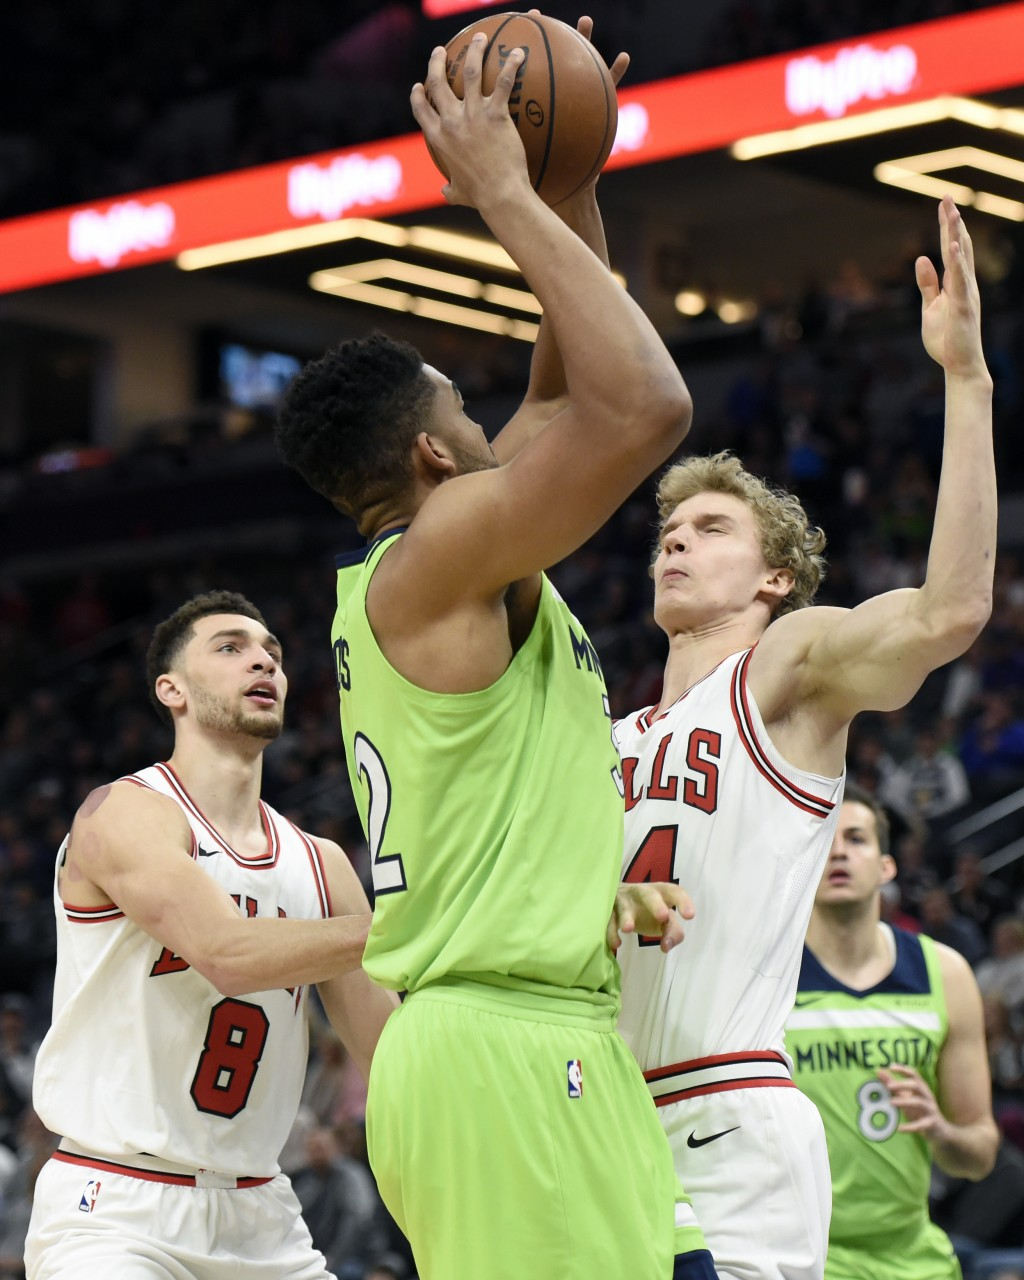 Minnesota Timberwolves' Karl-Anthony Towns, center, shoots against Chicago Bulls' Zach LaVine (8) and Lauri Markkanen, of Finland, during the first qu...